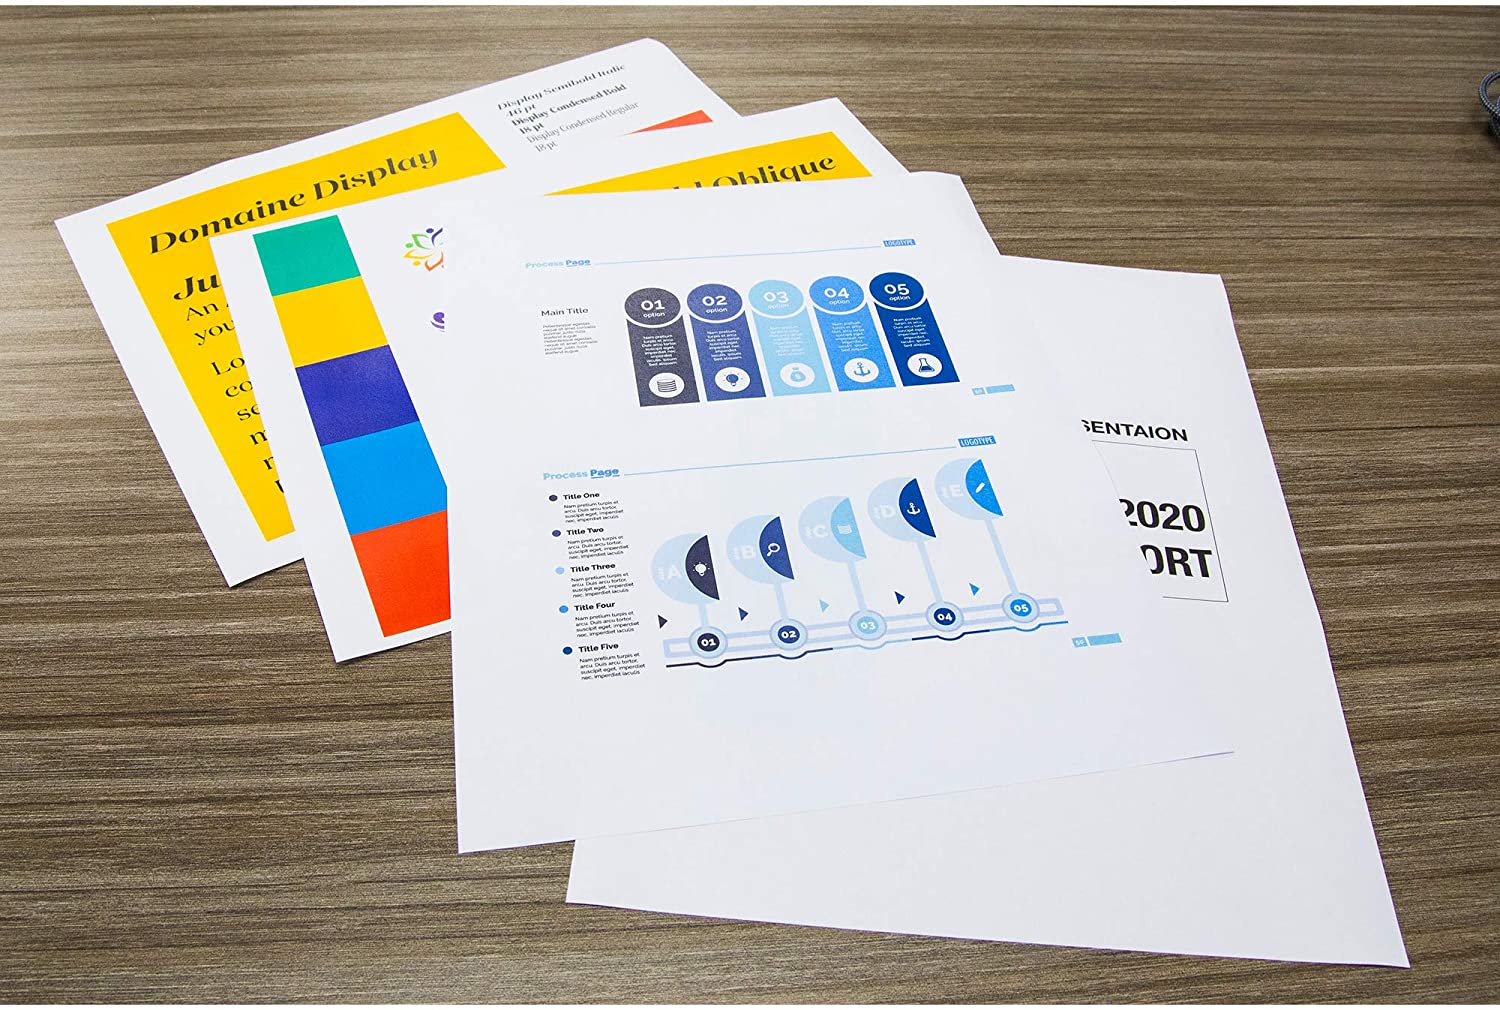 80//Pack BAZIC 80 Sheets 8.5 x 11 White Multipurpose Paper 20 lb Copy Paper Fax Laser /& General Printing 75 gms School Office Supplies Great for Create Report Document Presentation Flyer Arts Crafts